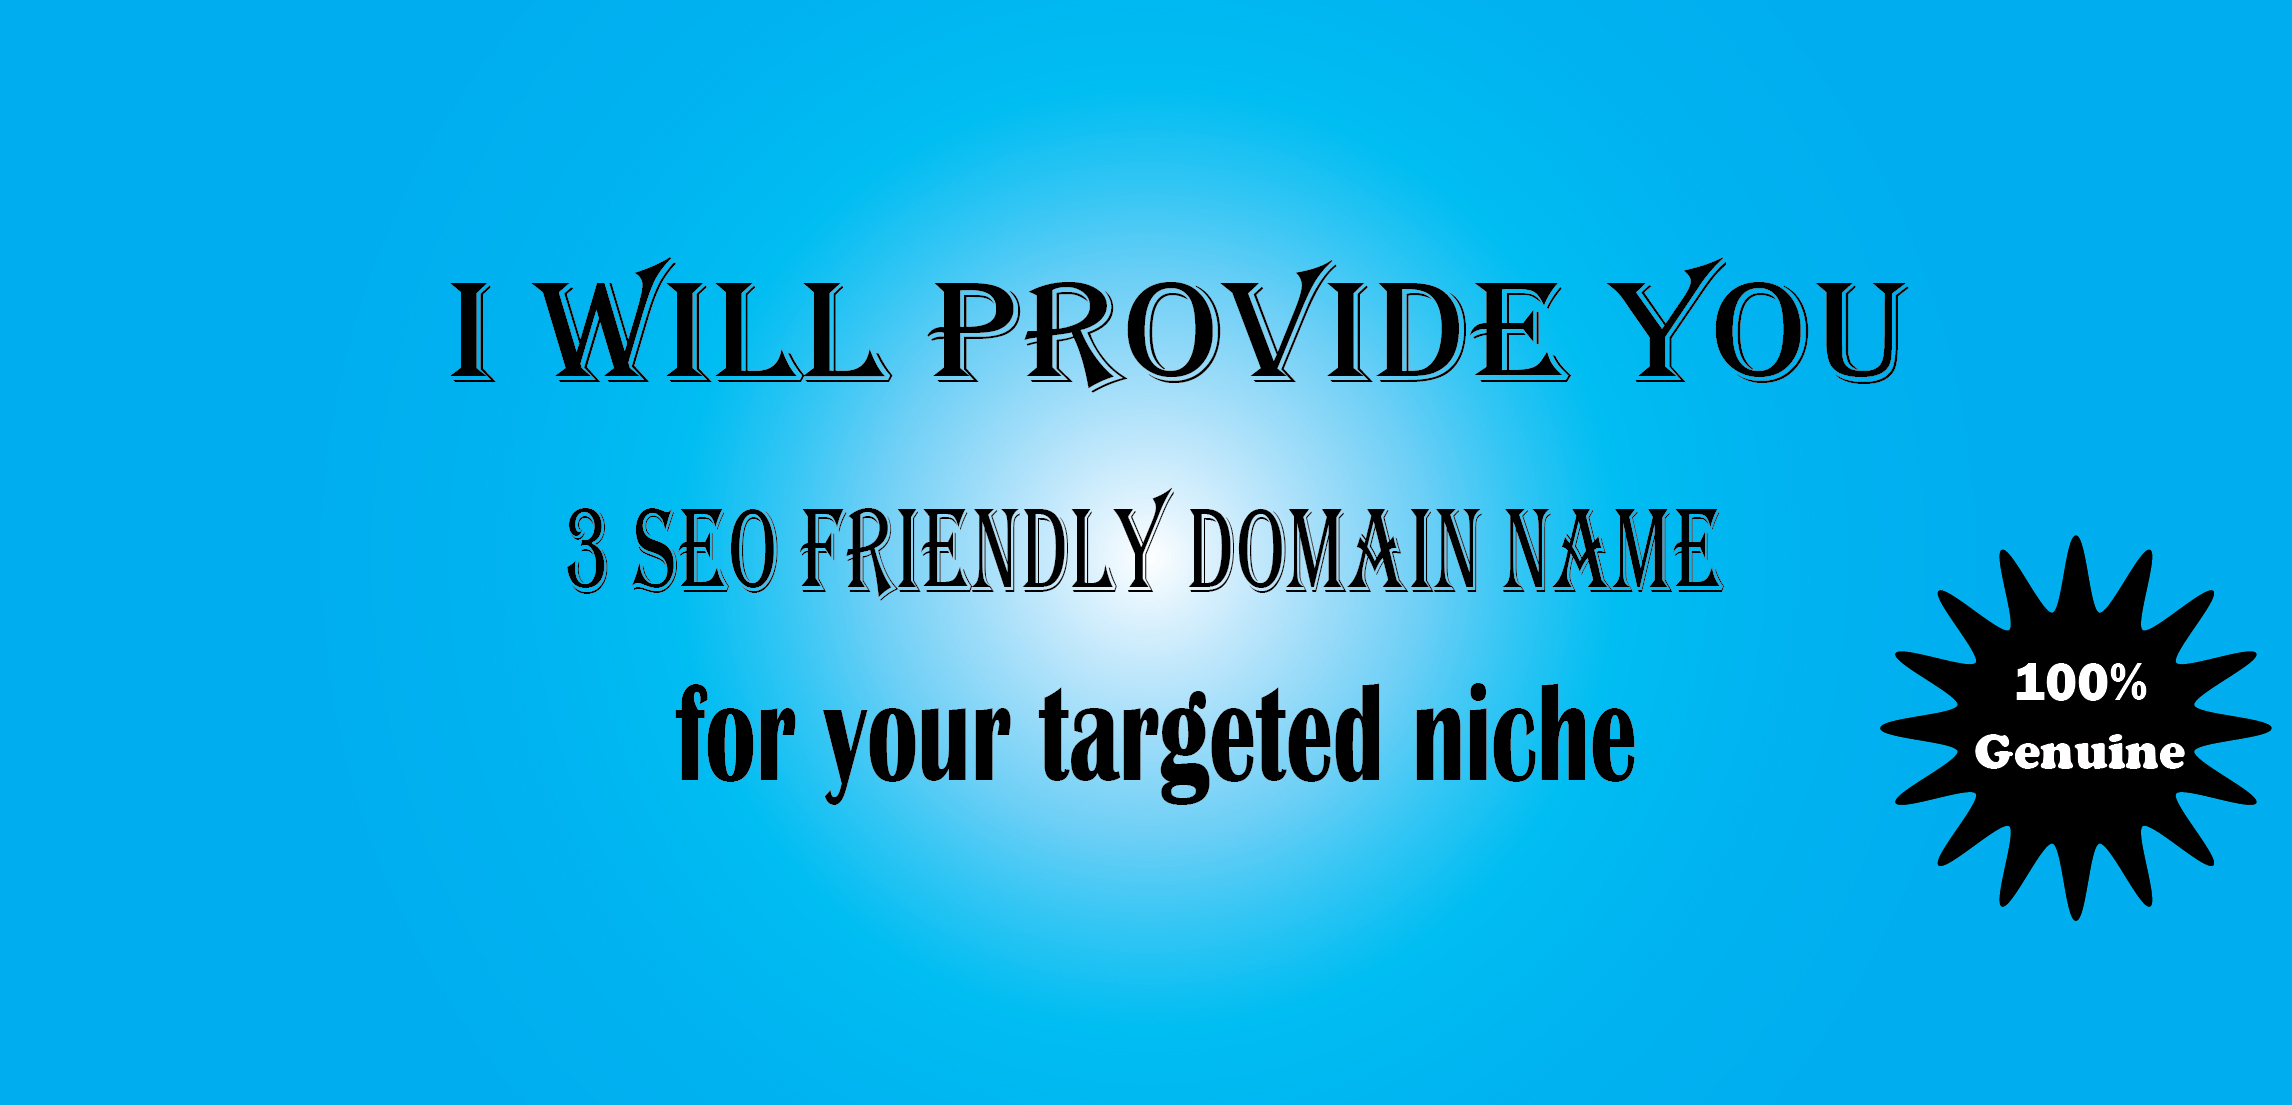 I will provide you 3 seo friendly domain name for your targeted niche